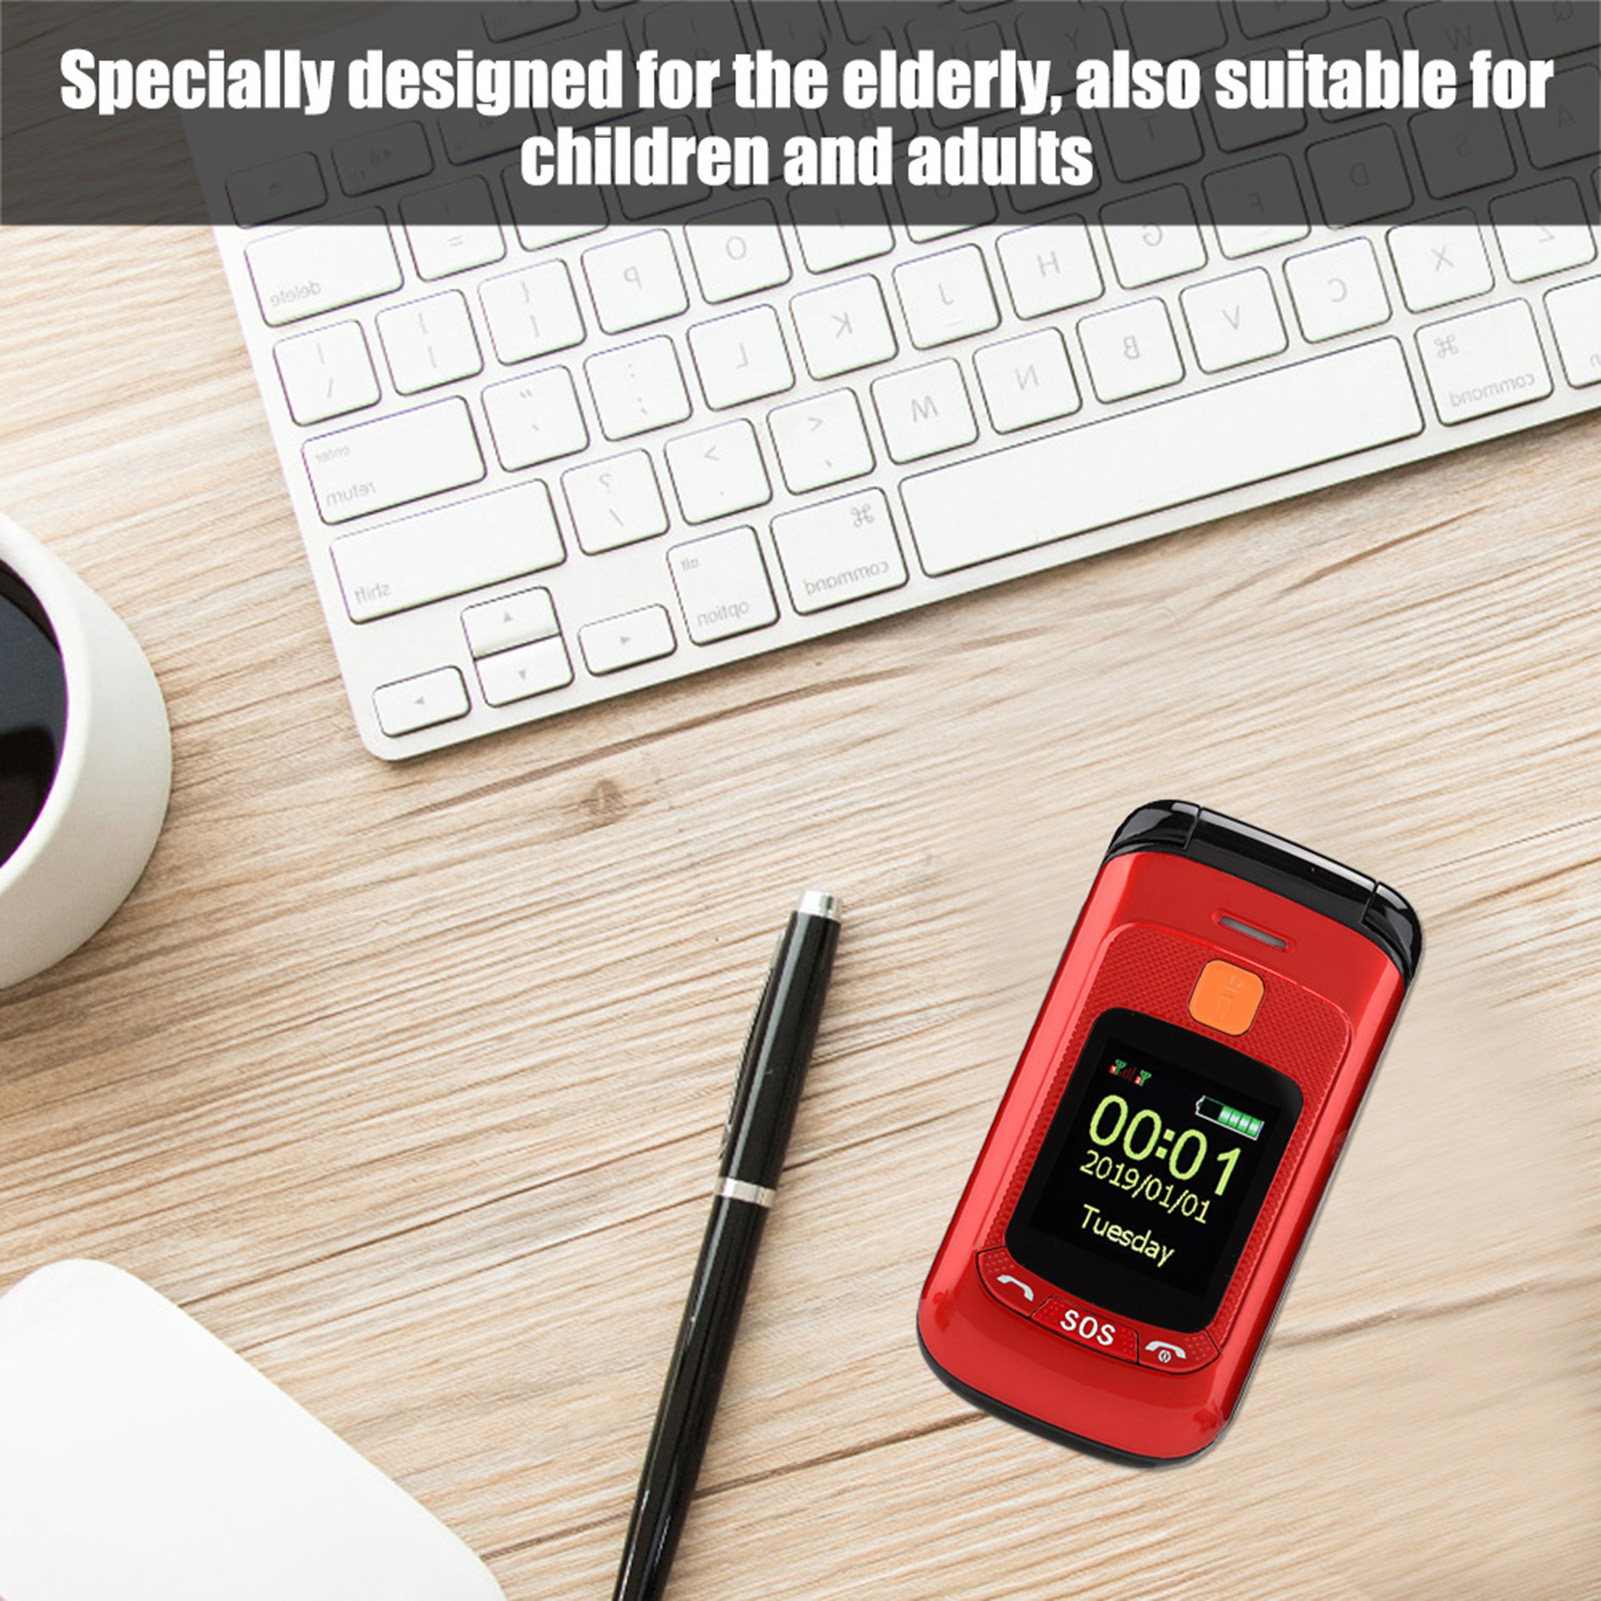 F899Full-Voice-Assistance-Touch-Screen-Flip-Mobile-Phone-2800mAh-Dual-Card-Phone miniature 7